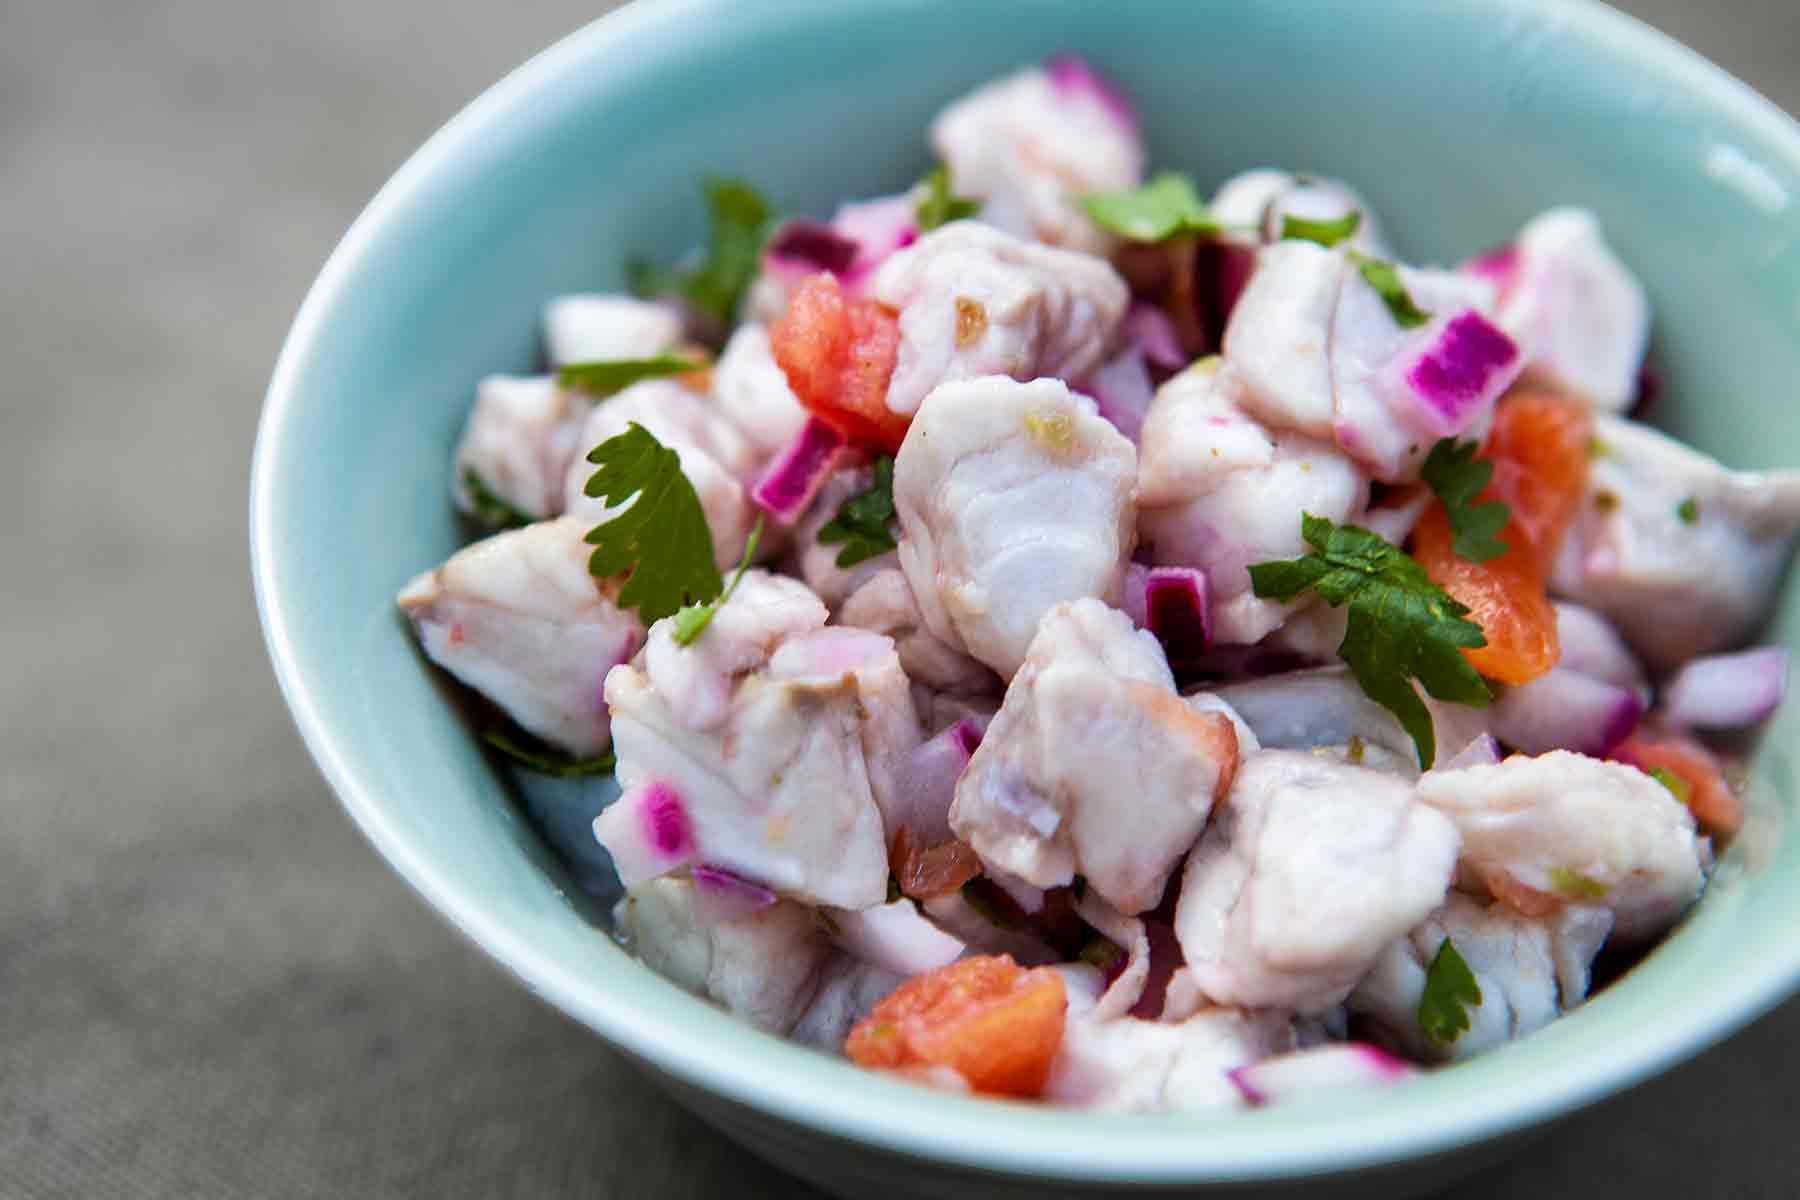 Ceviche with fish, onion, tomatoes, and chilis in a bowl